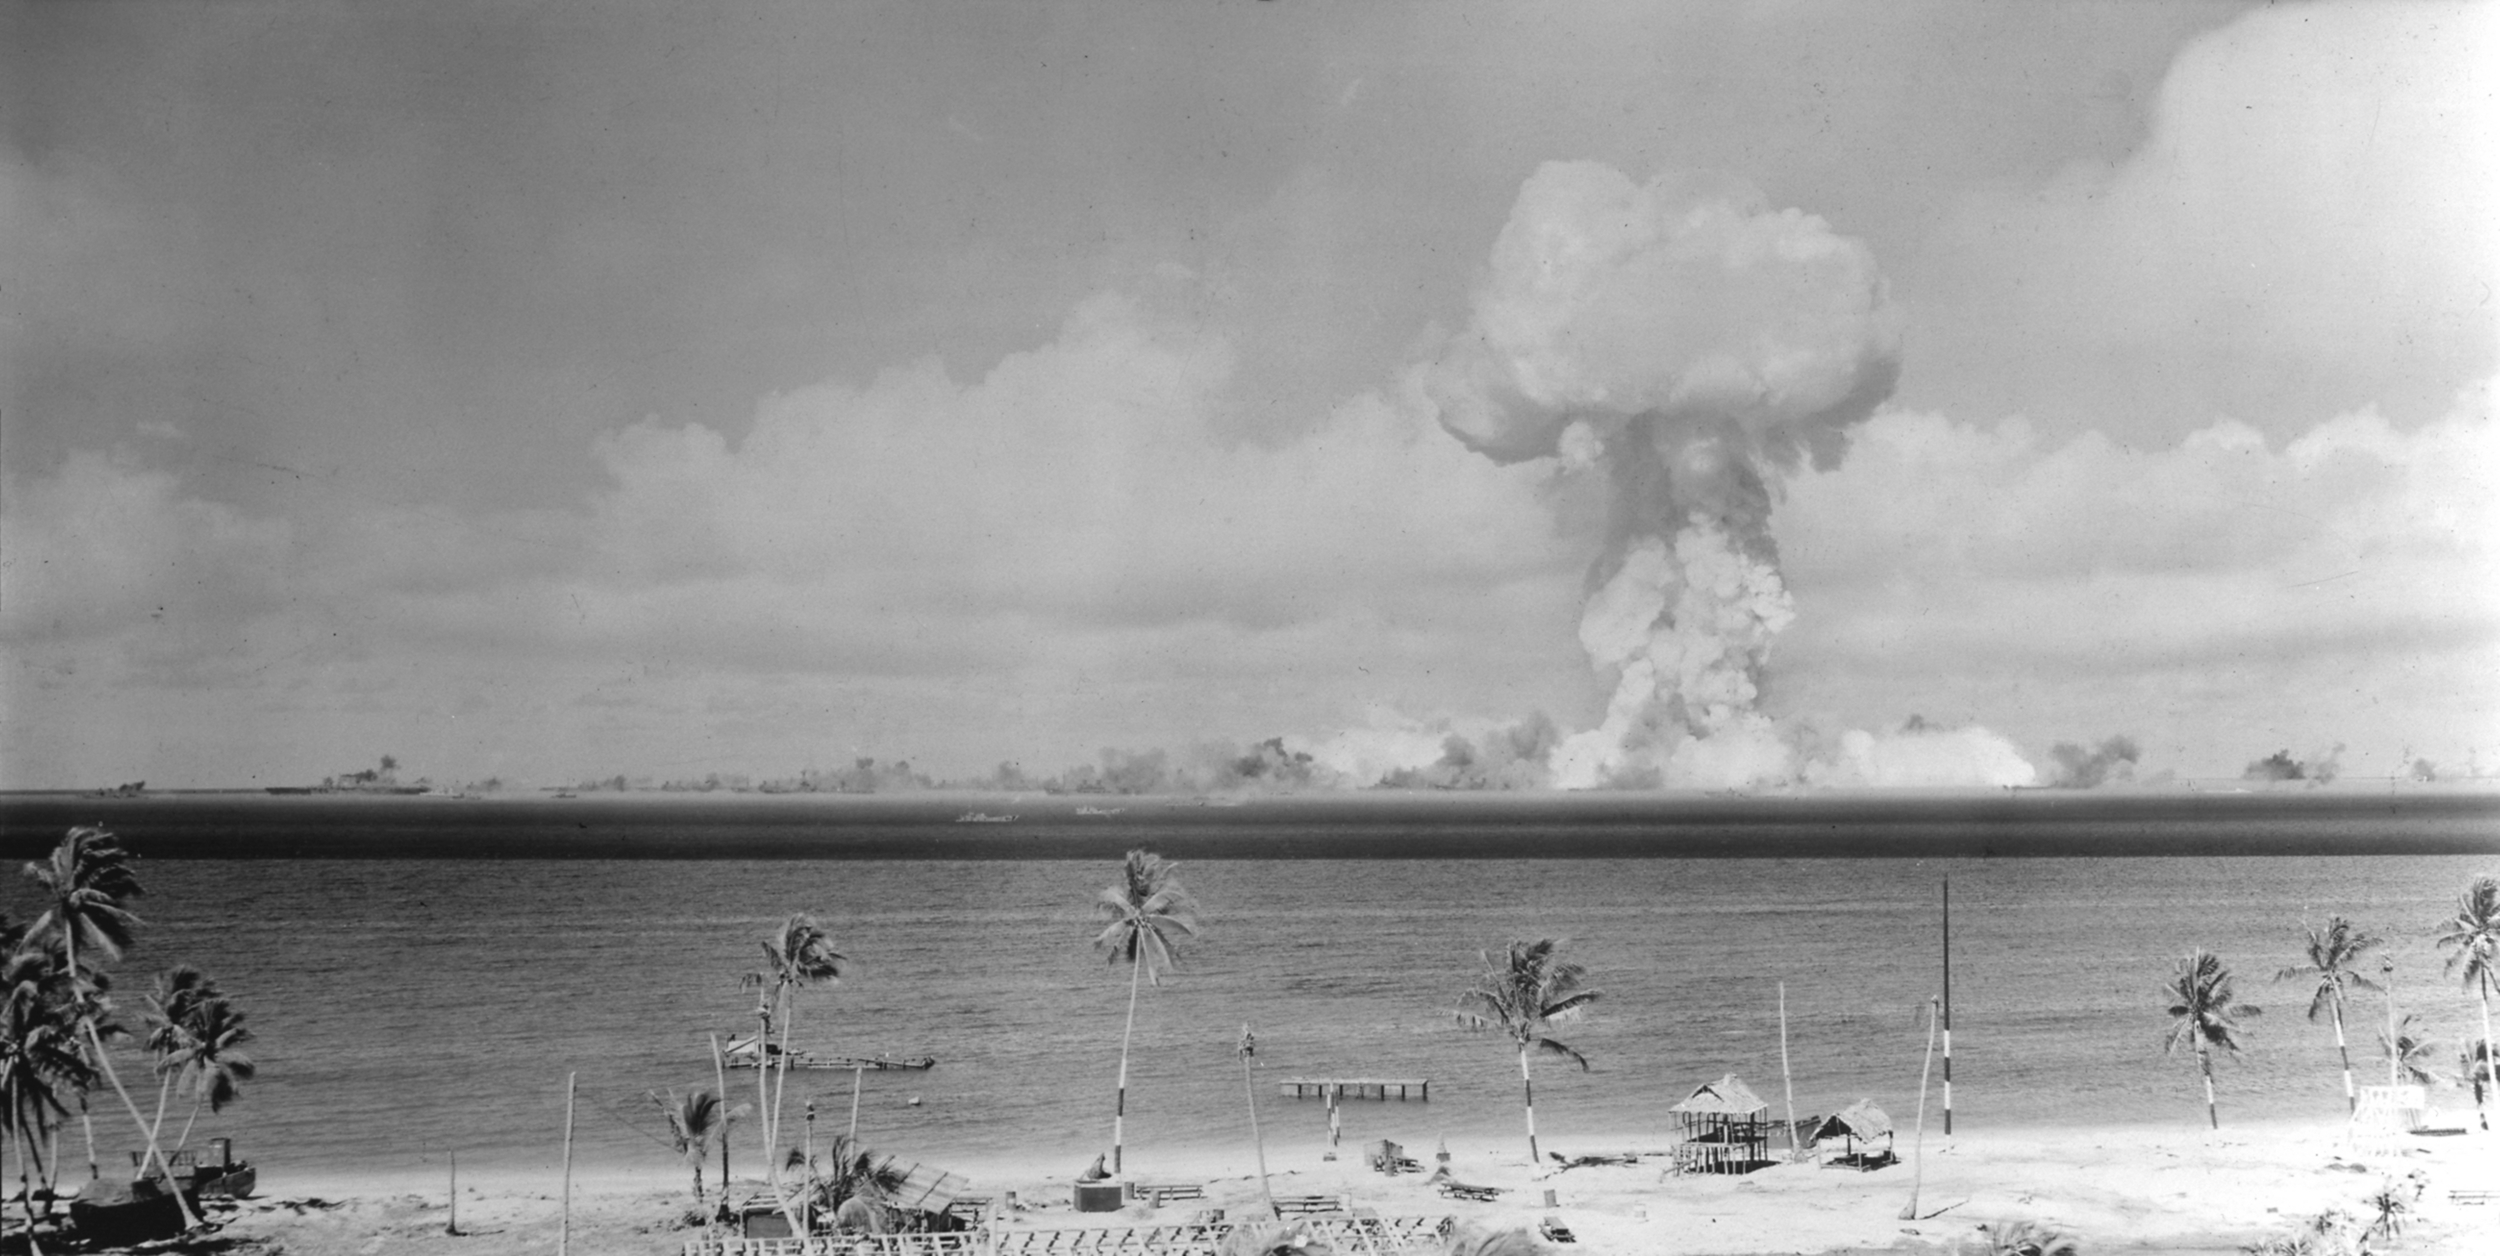 """July 1, 1946, The atomic cloud during the """"Able"""" nuclear test at the Bikini atoll. National Archives and Records Administration, U.S. Navy (photo 80-G-396226)"""